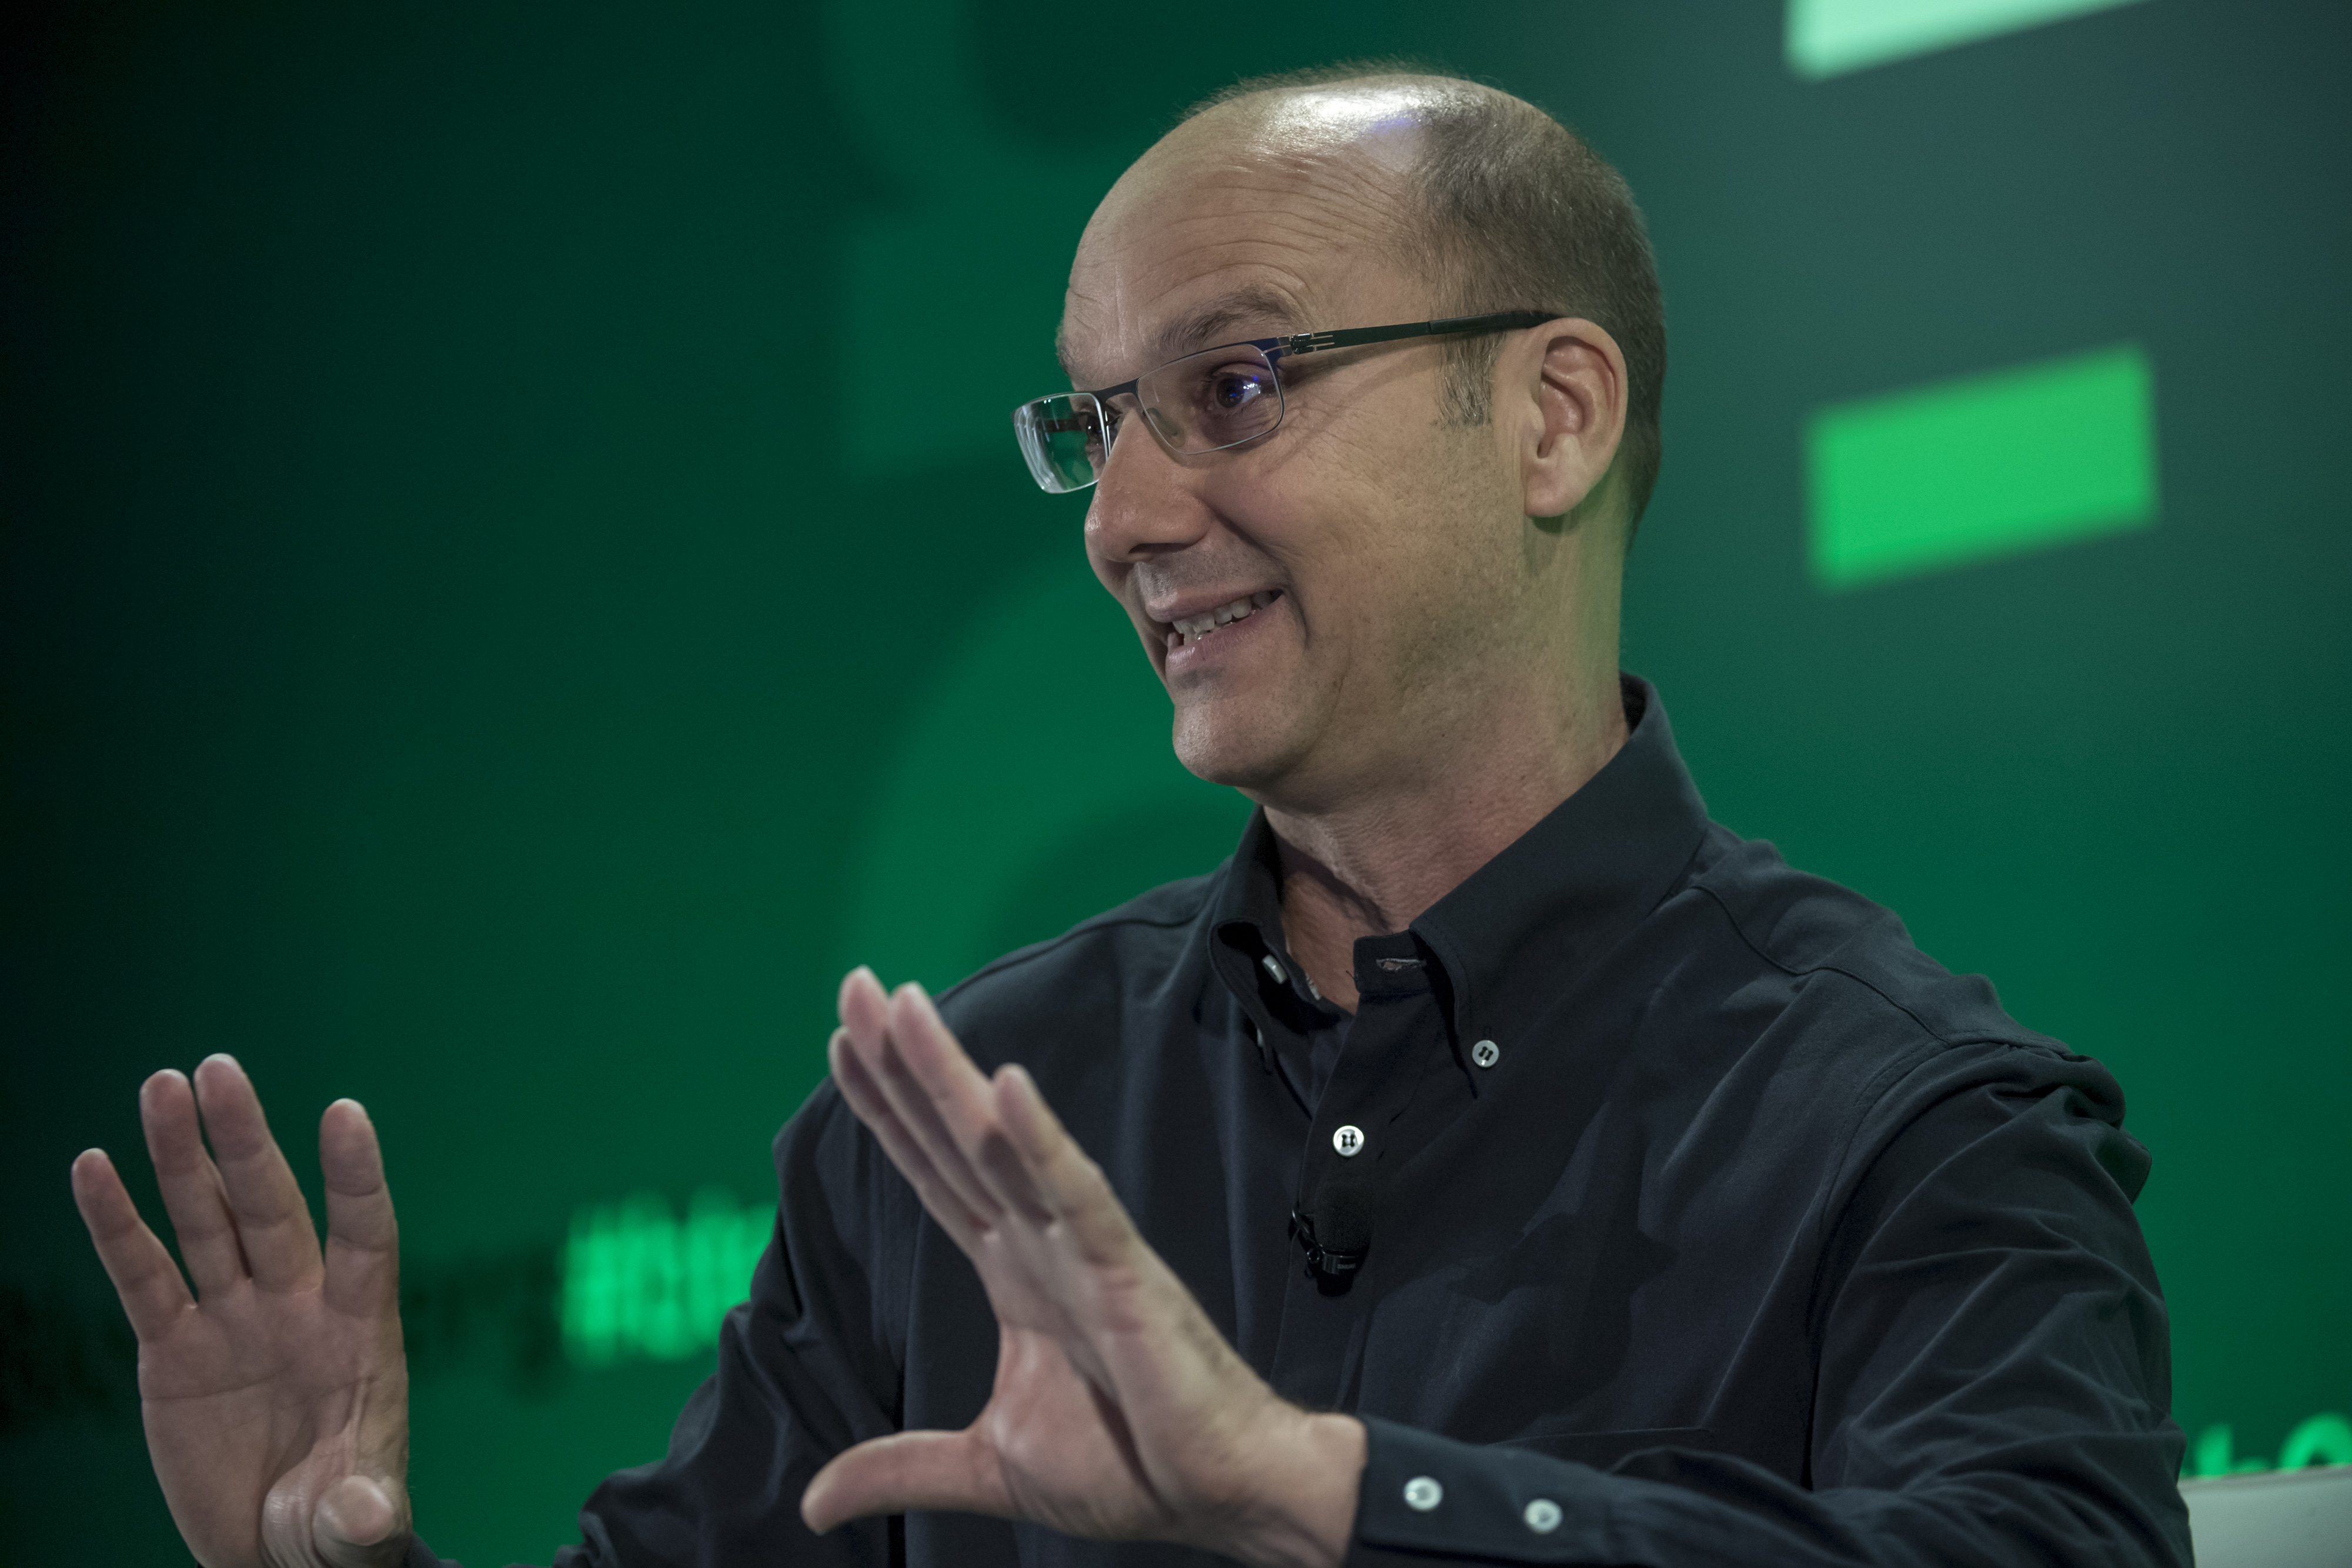 Andy Rubin speaks at a tech conference in 2016